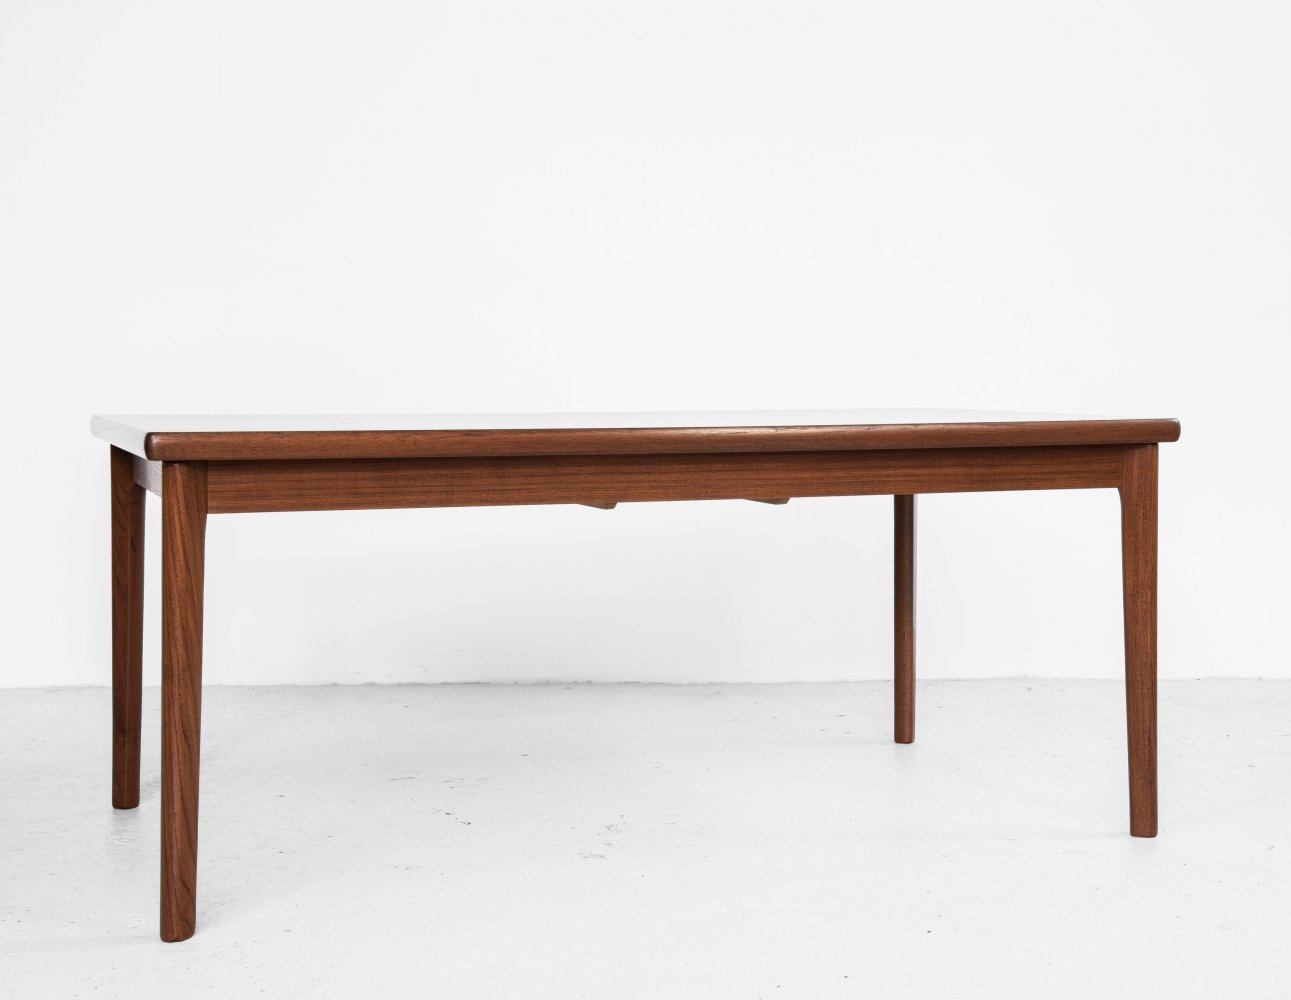 Midcentury Danish rectangular dining table in teak with 2 extensions, 1960s